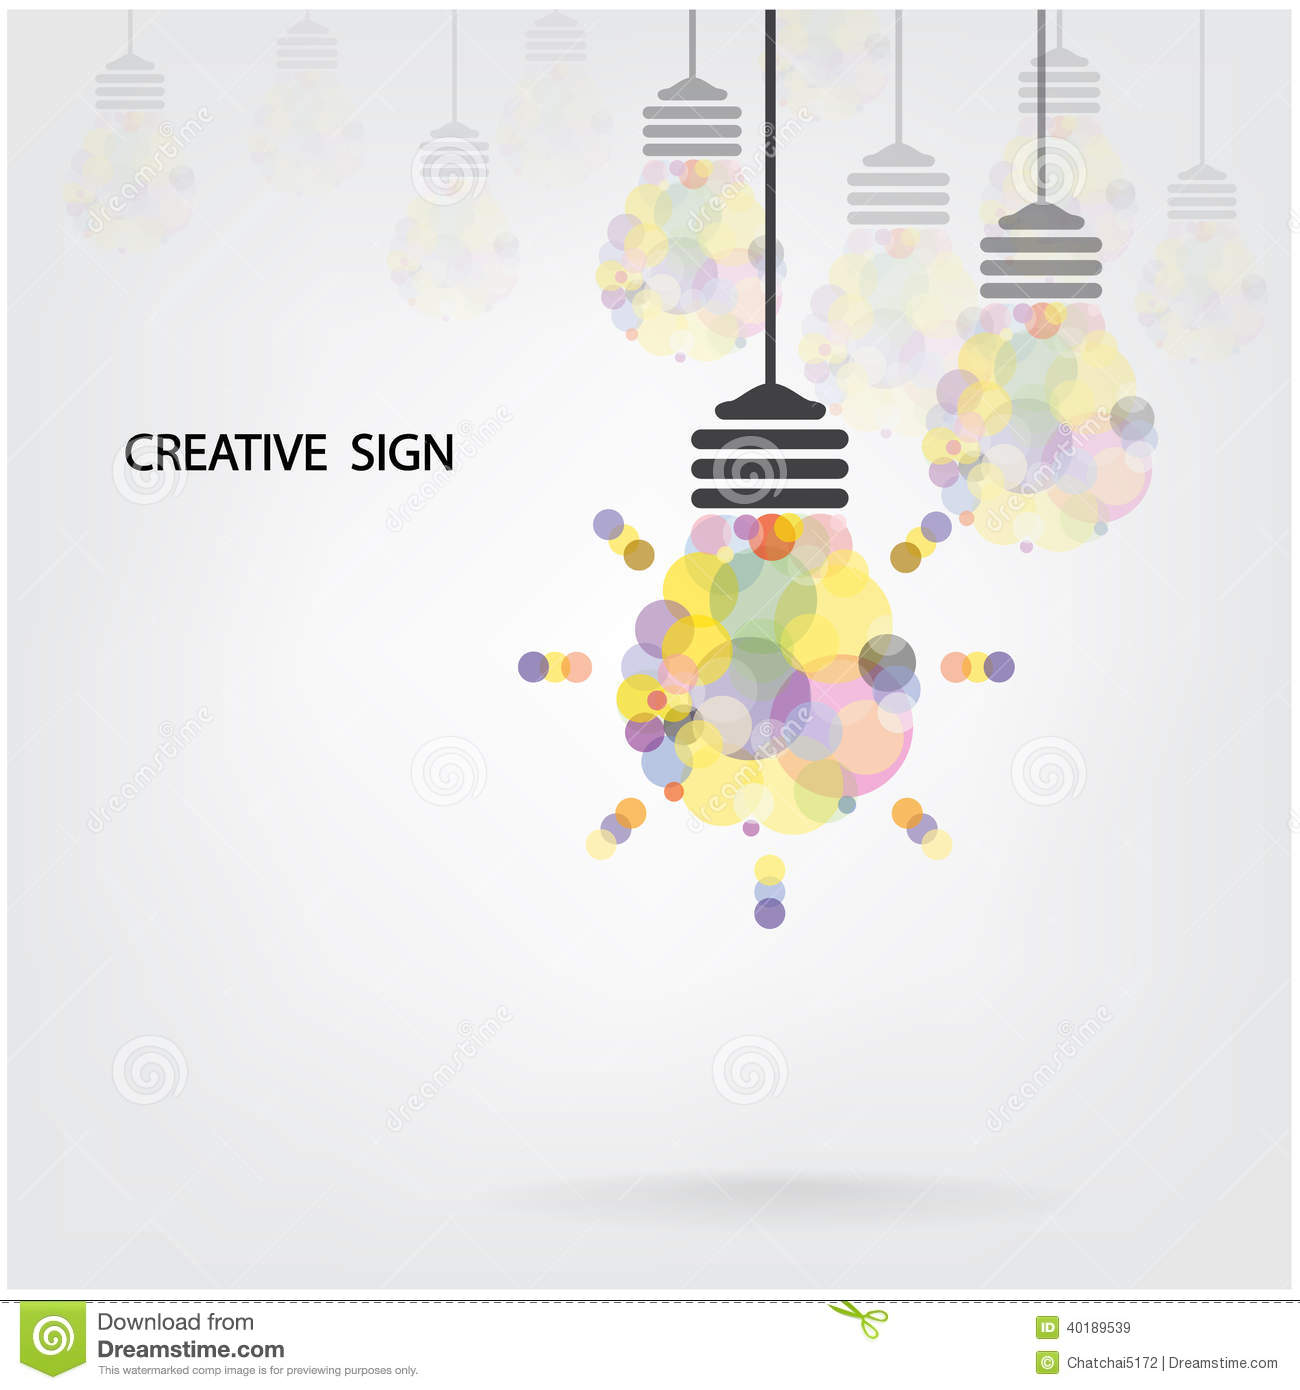 Creative Light Bulb Idea Concept Background Design Stock ...